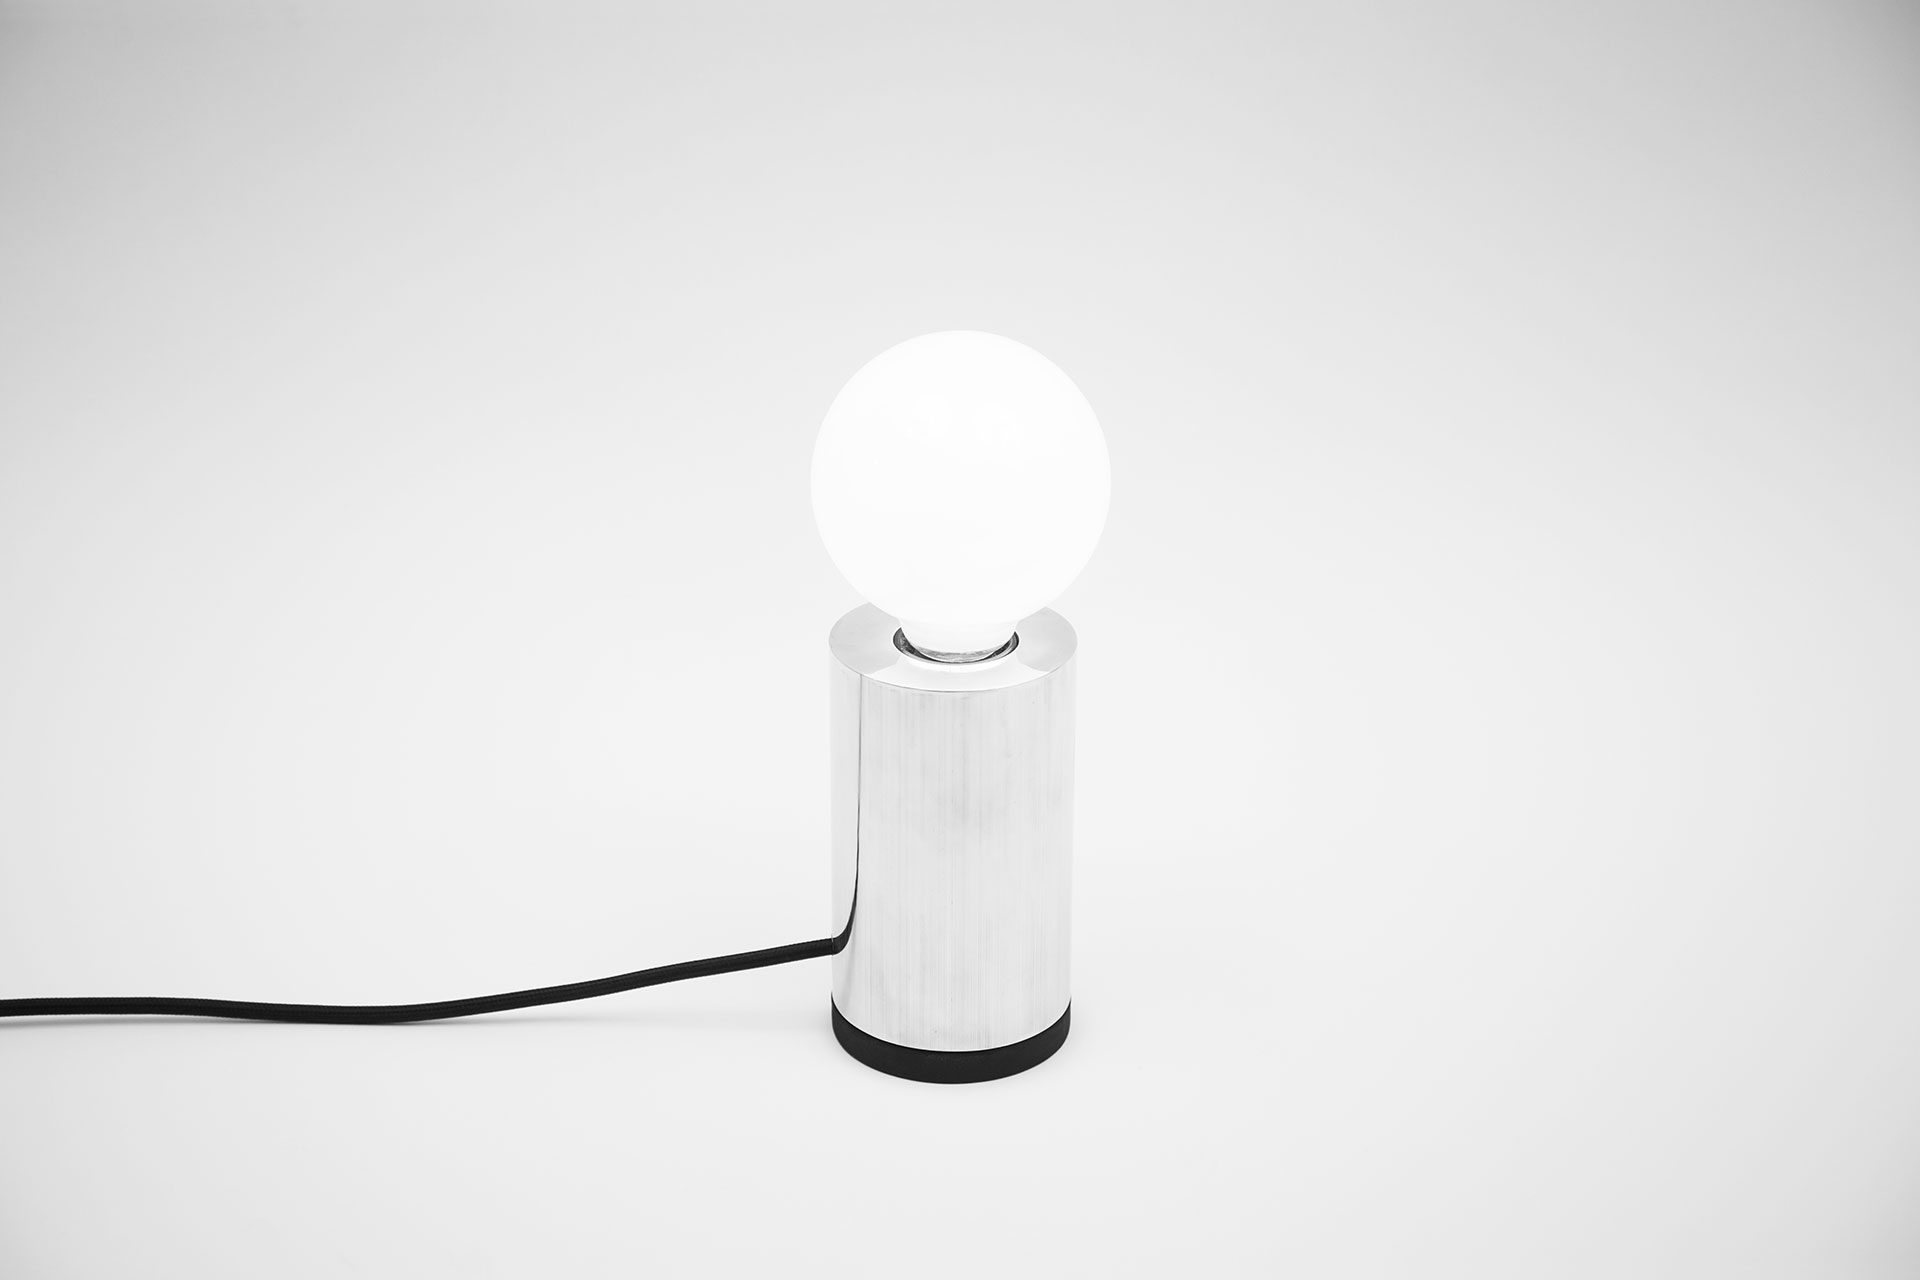 Minimalist desk lamp made of solid aluminum with creative touch dimmer inspired by modern design